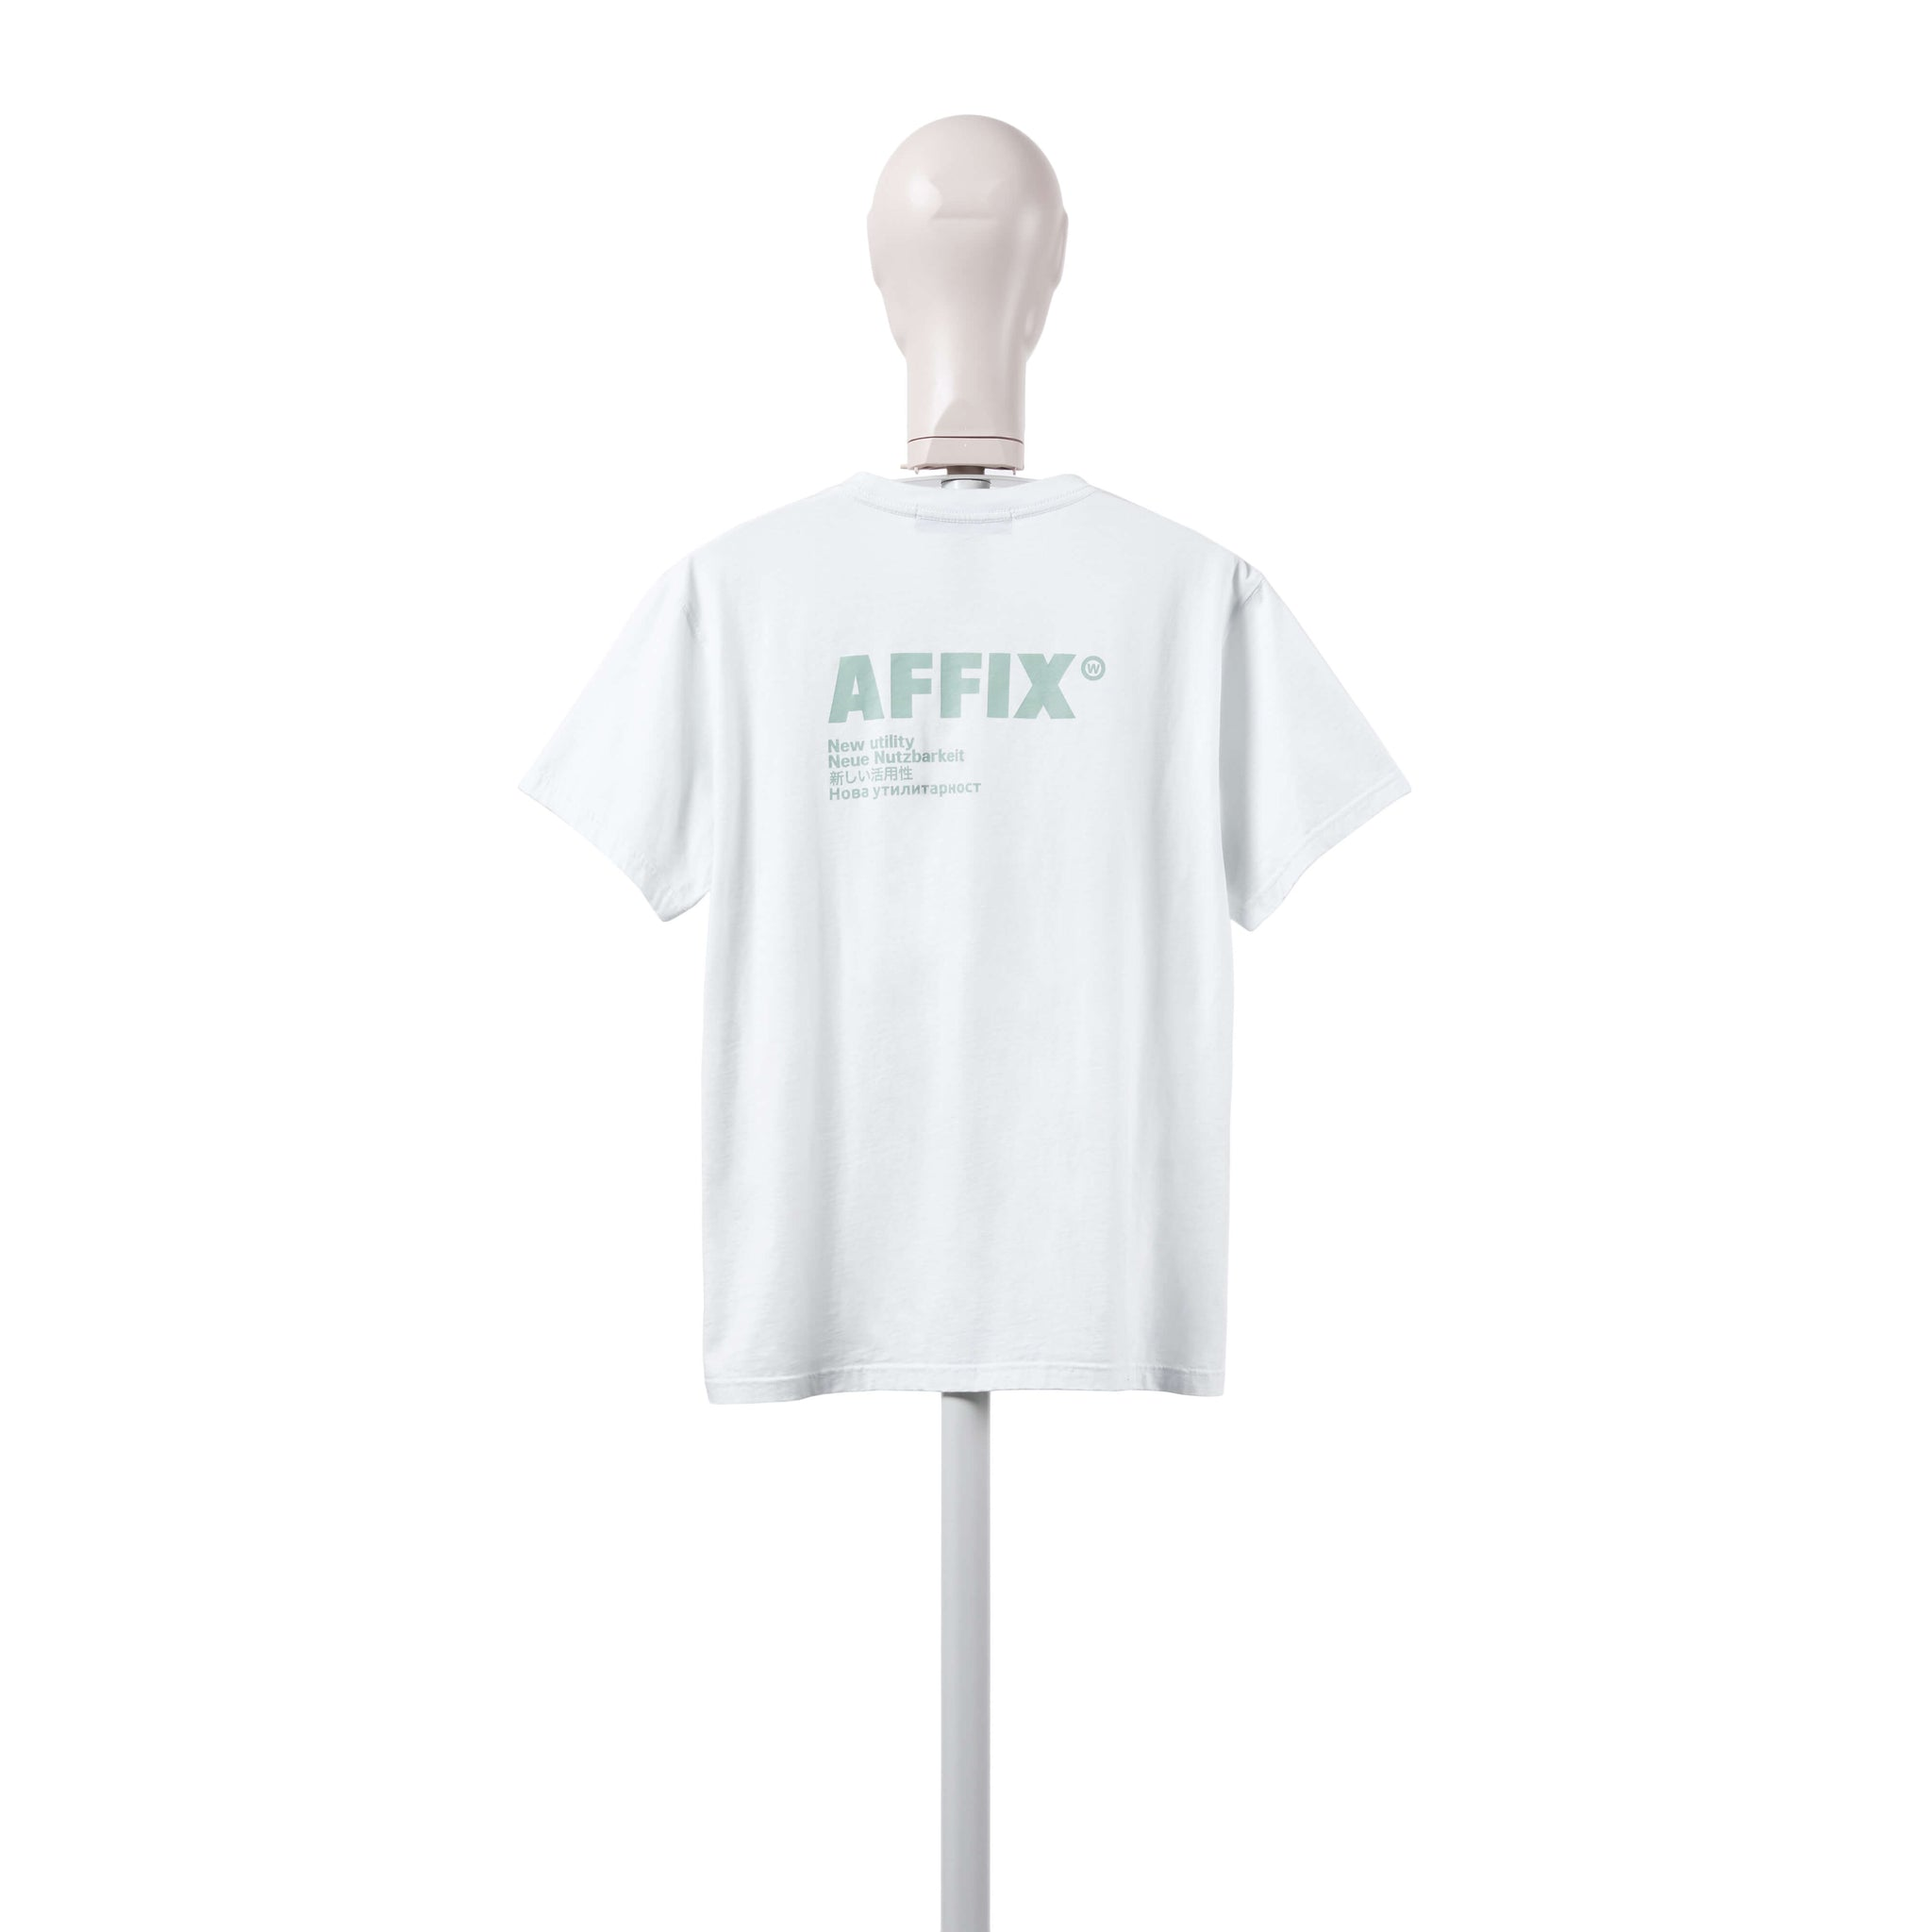 AFFIX WORKS AFFXWRKS STANDARDISED LOGO T-SHIRT LIGHT MINT